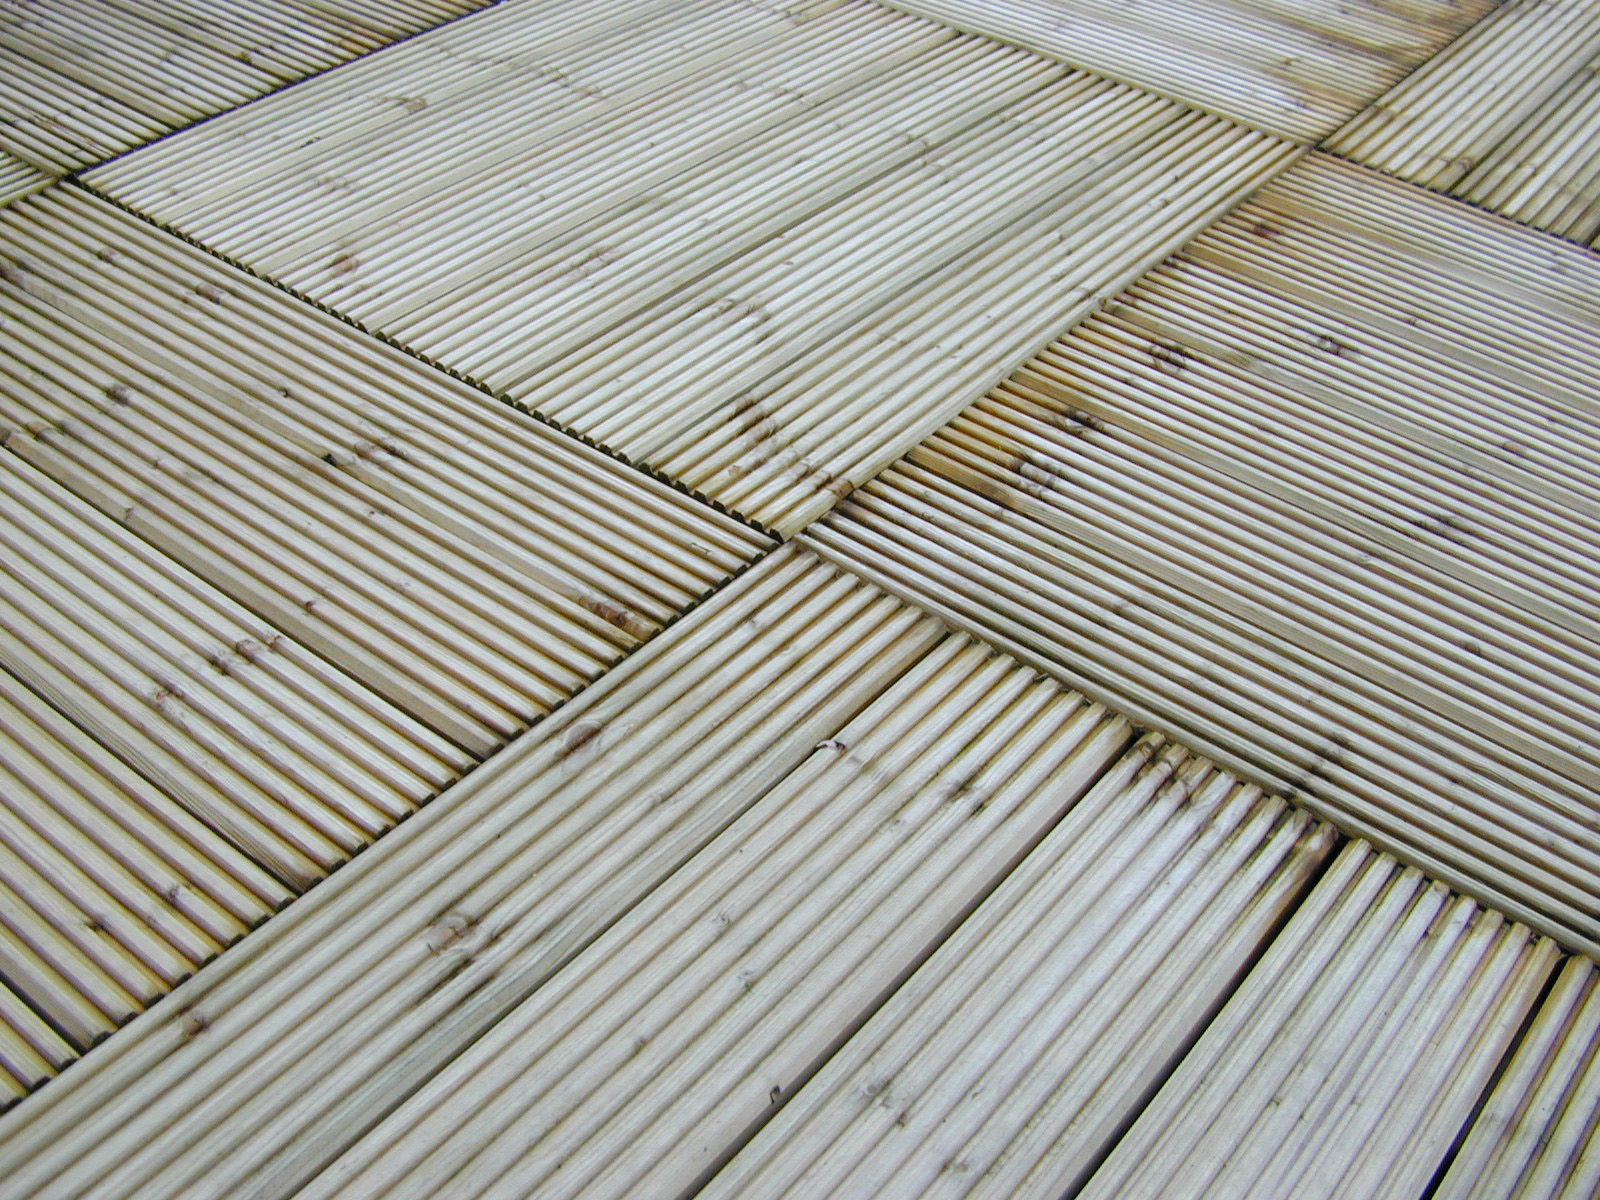 Wooden Decking March 2012